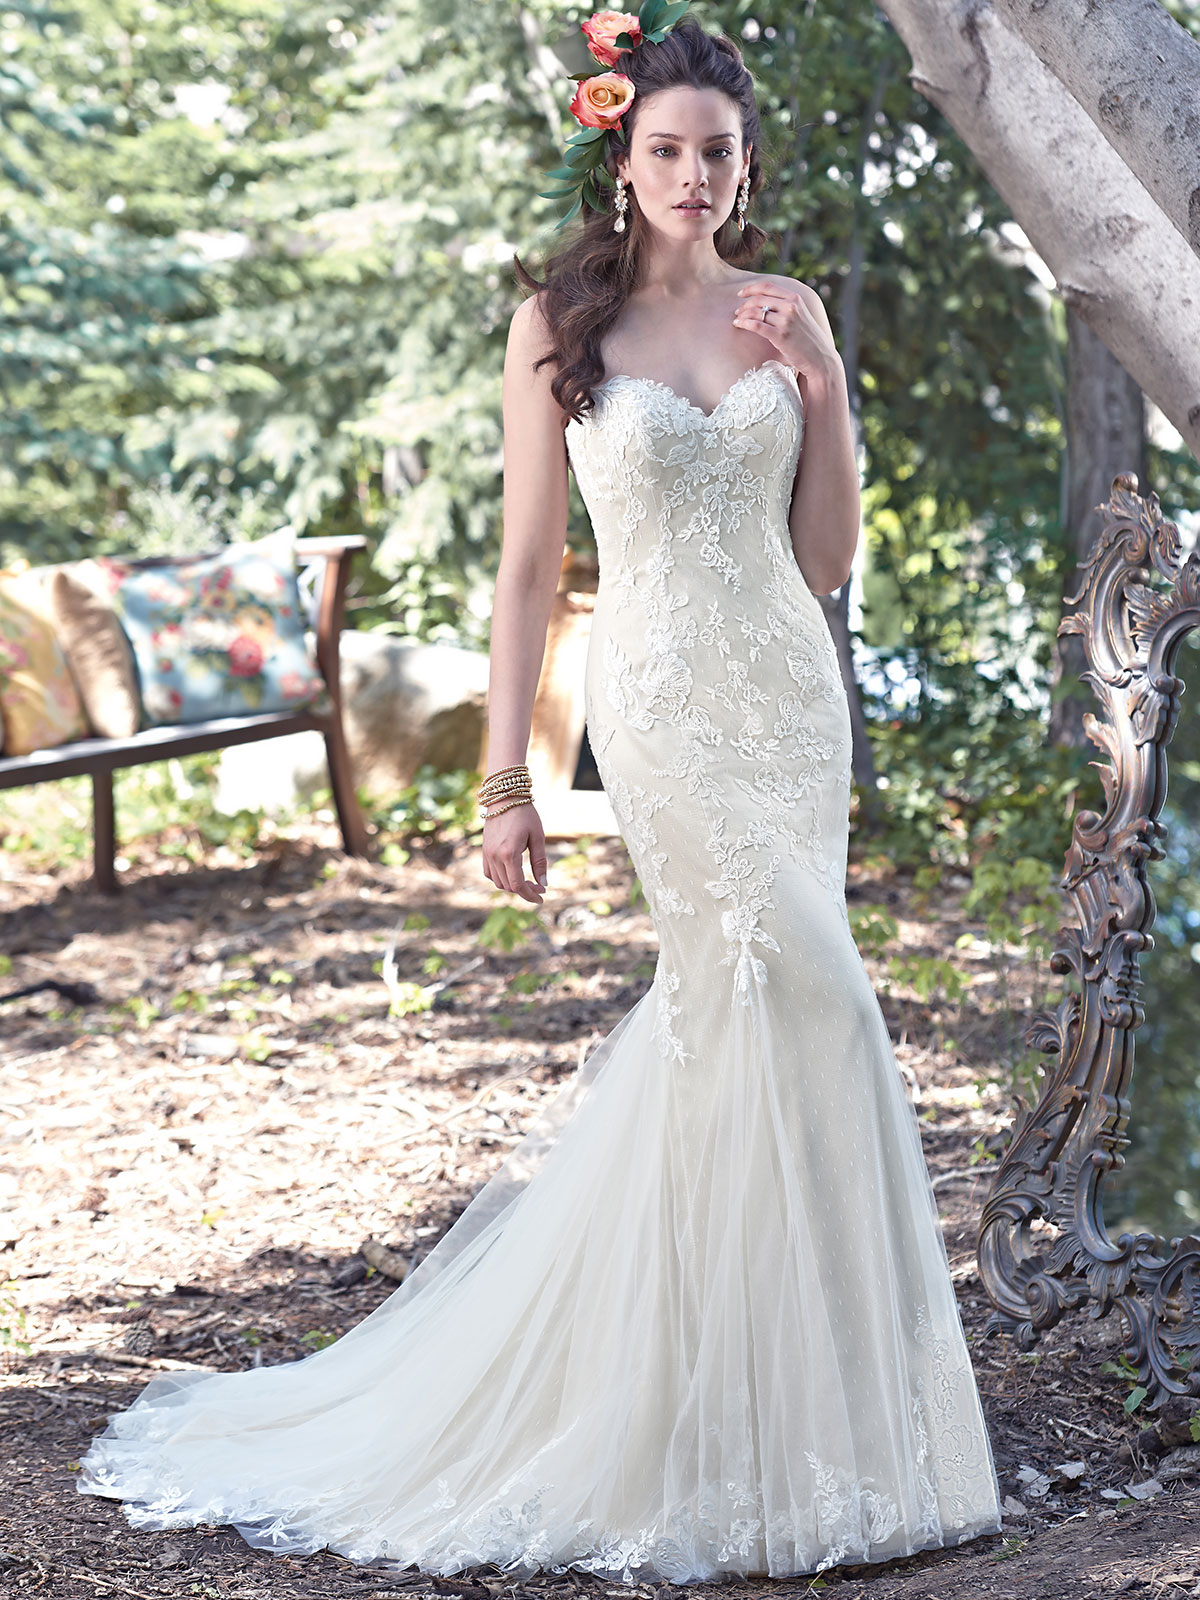 Maggie Sottero Carol Sweetheart Fit And Flare Bridal Dress ...